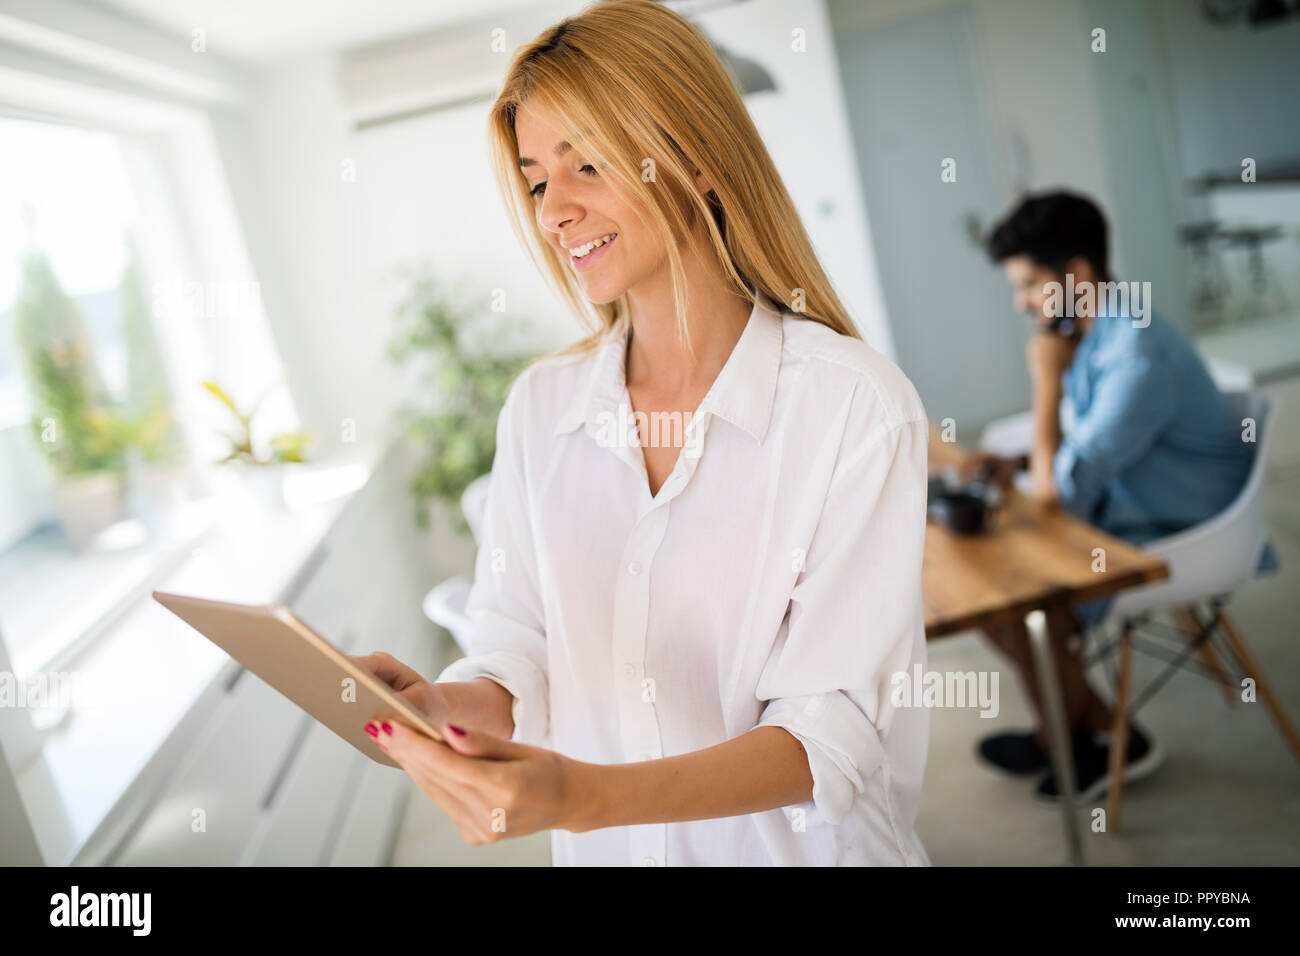 Attractive woman working on a tablet in a home office. Stock Photo